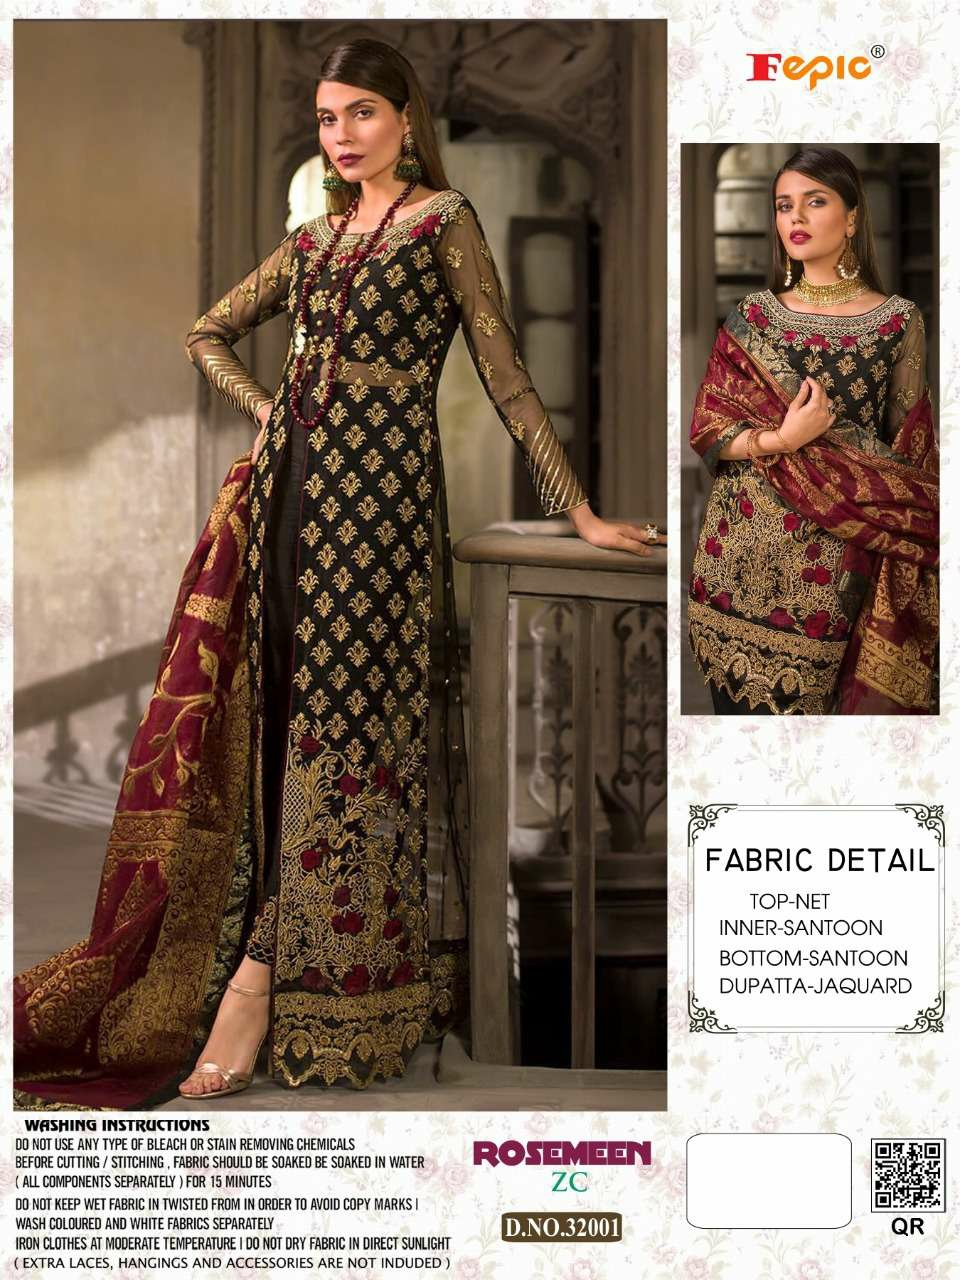 FEPIC SHARE FEPIC READY TO SHIP SINGLE SALWAR KAMEEZ 16-OCT-2021 9